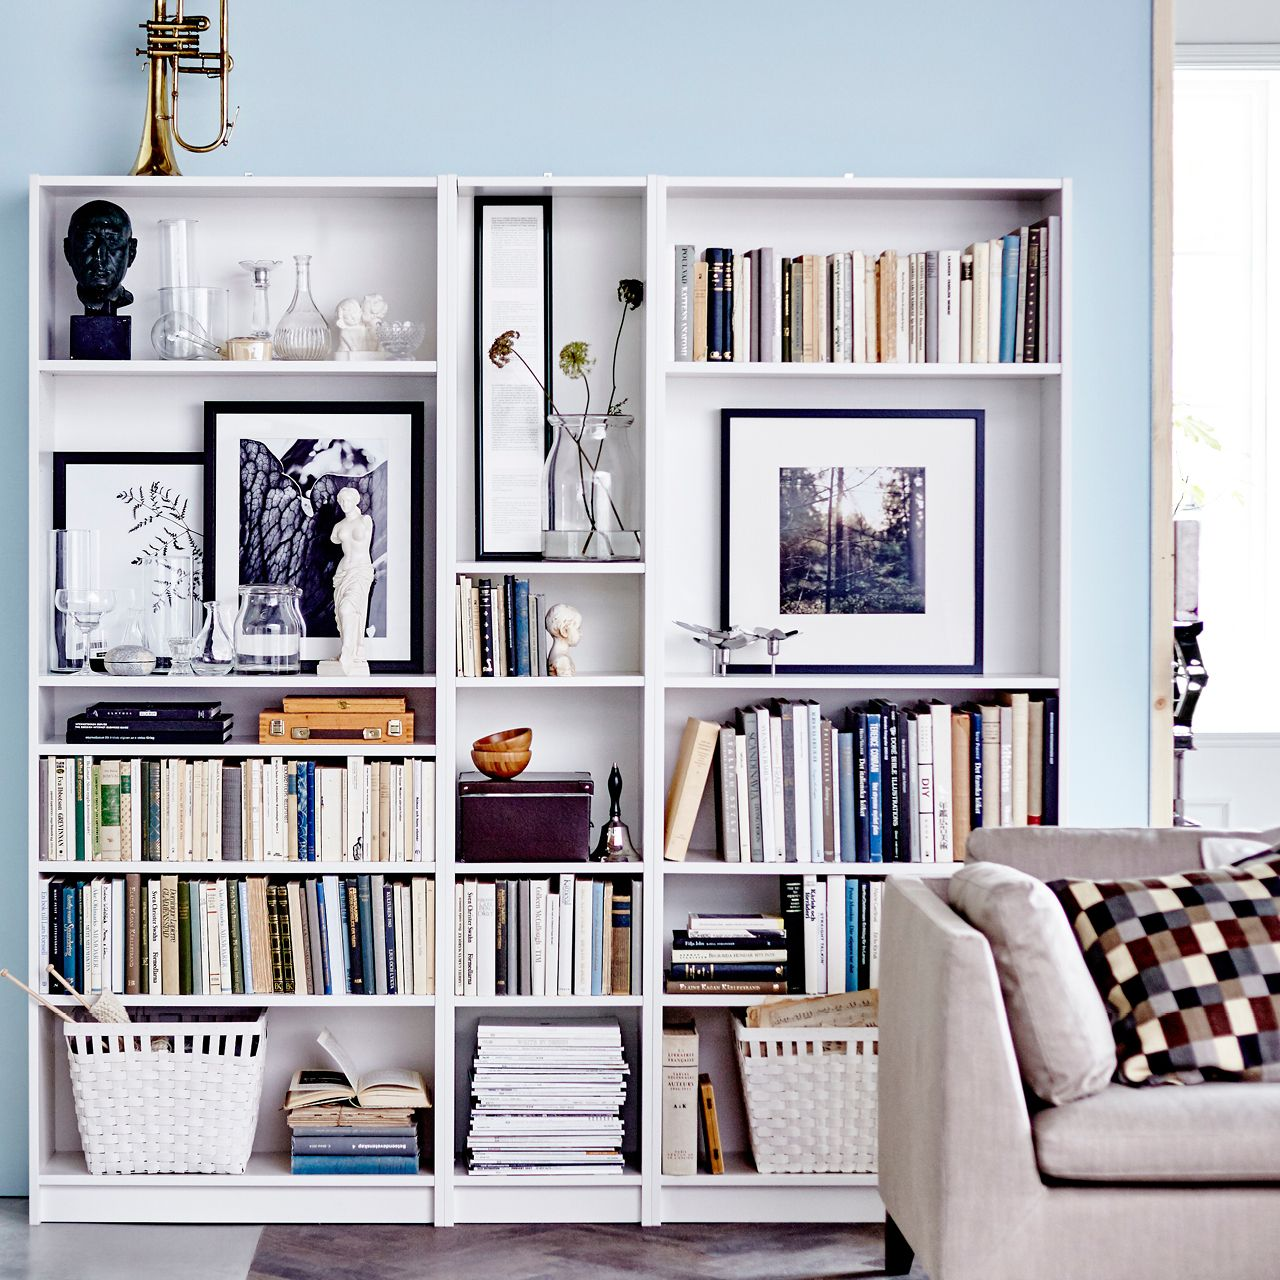 ikea billy bookcase leave an extra wide shelf at shoulder height so you have space for a mirror and to display some treasured items - Ikea Billy Bookshelves